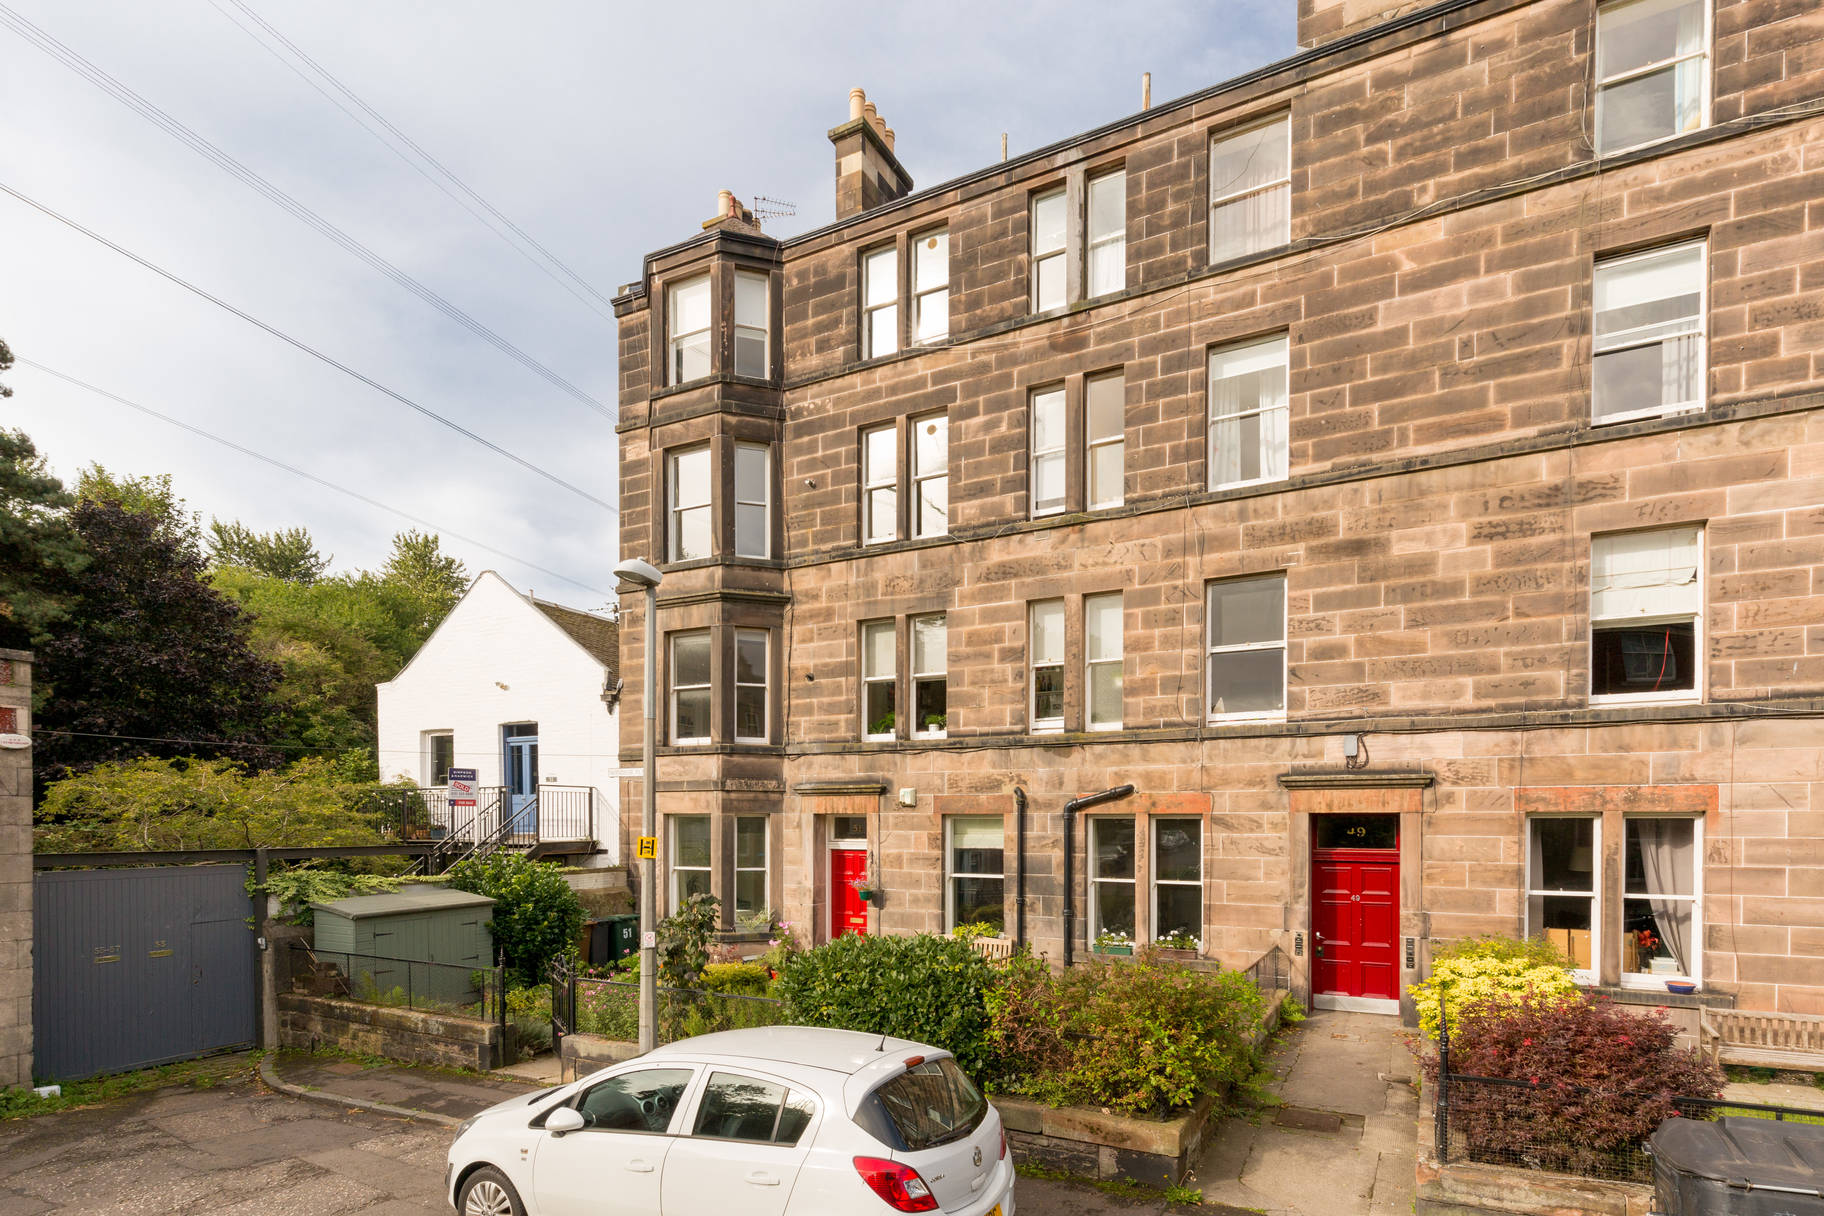 49 (1F3) Windsor Place, Portobello, Edinburgh, EH15 2AF